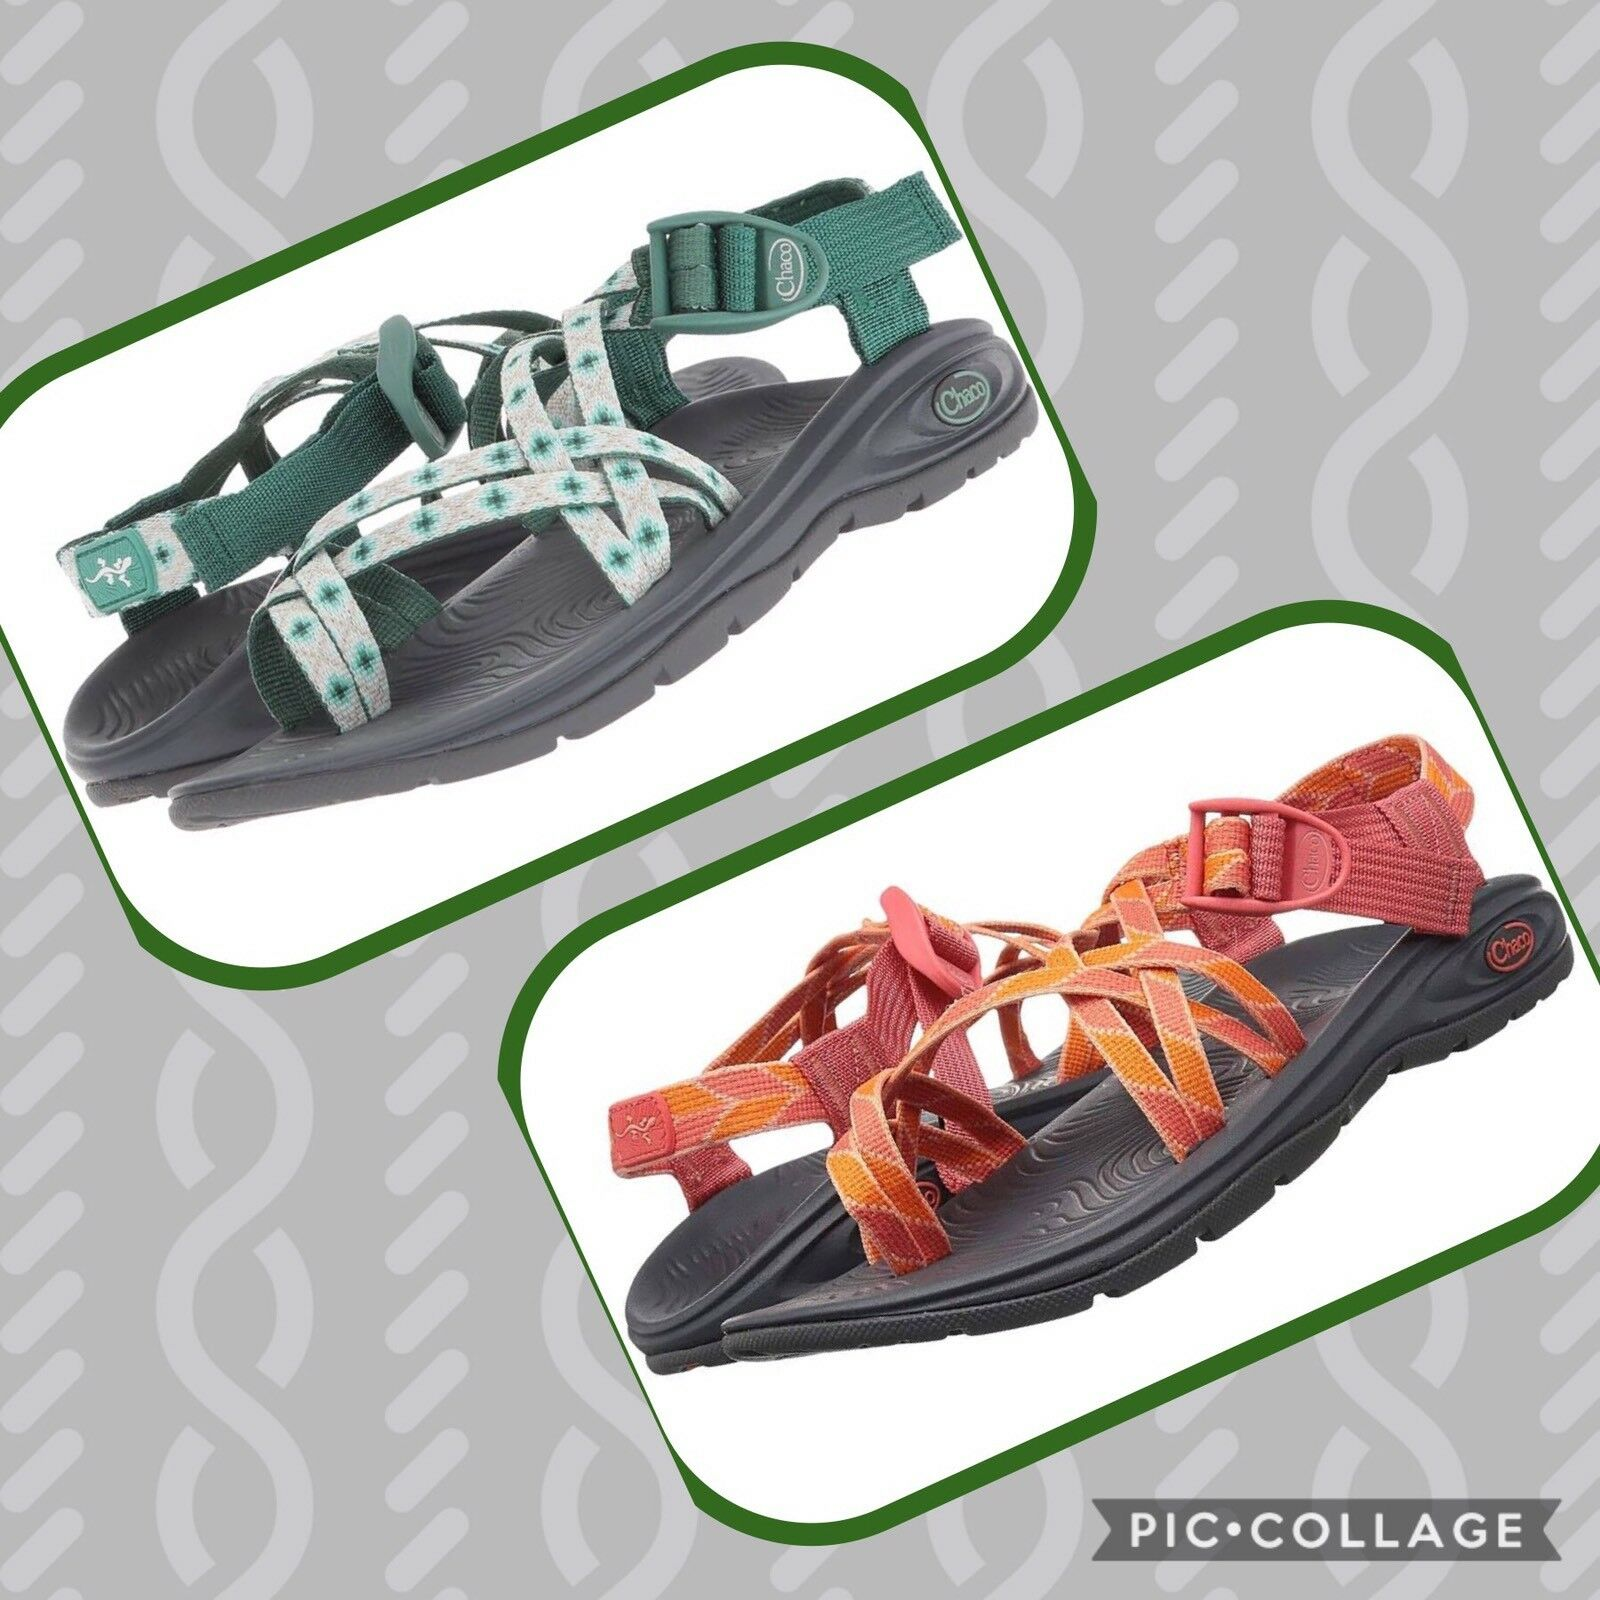 NIB Chaco Zvolv X2 Sandals Women's Sz 8 Green Diamond Pine Verdure Peach orange